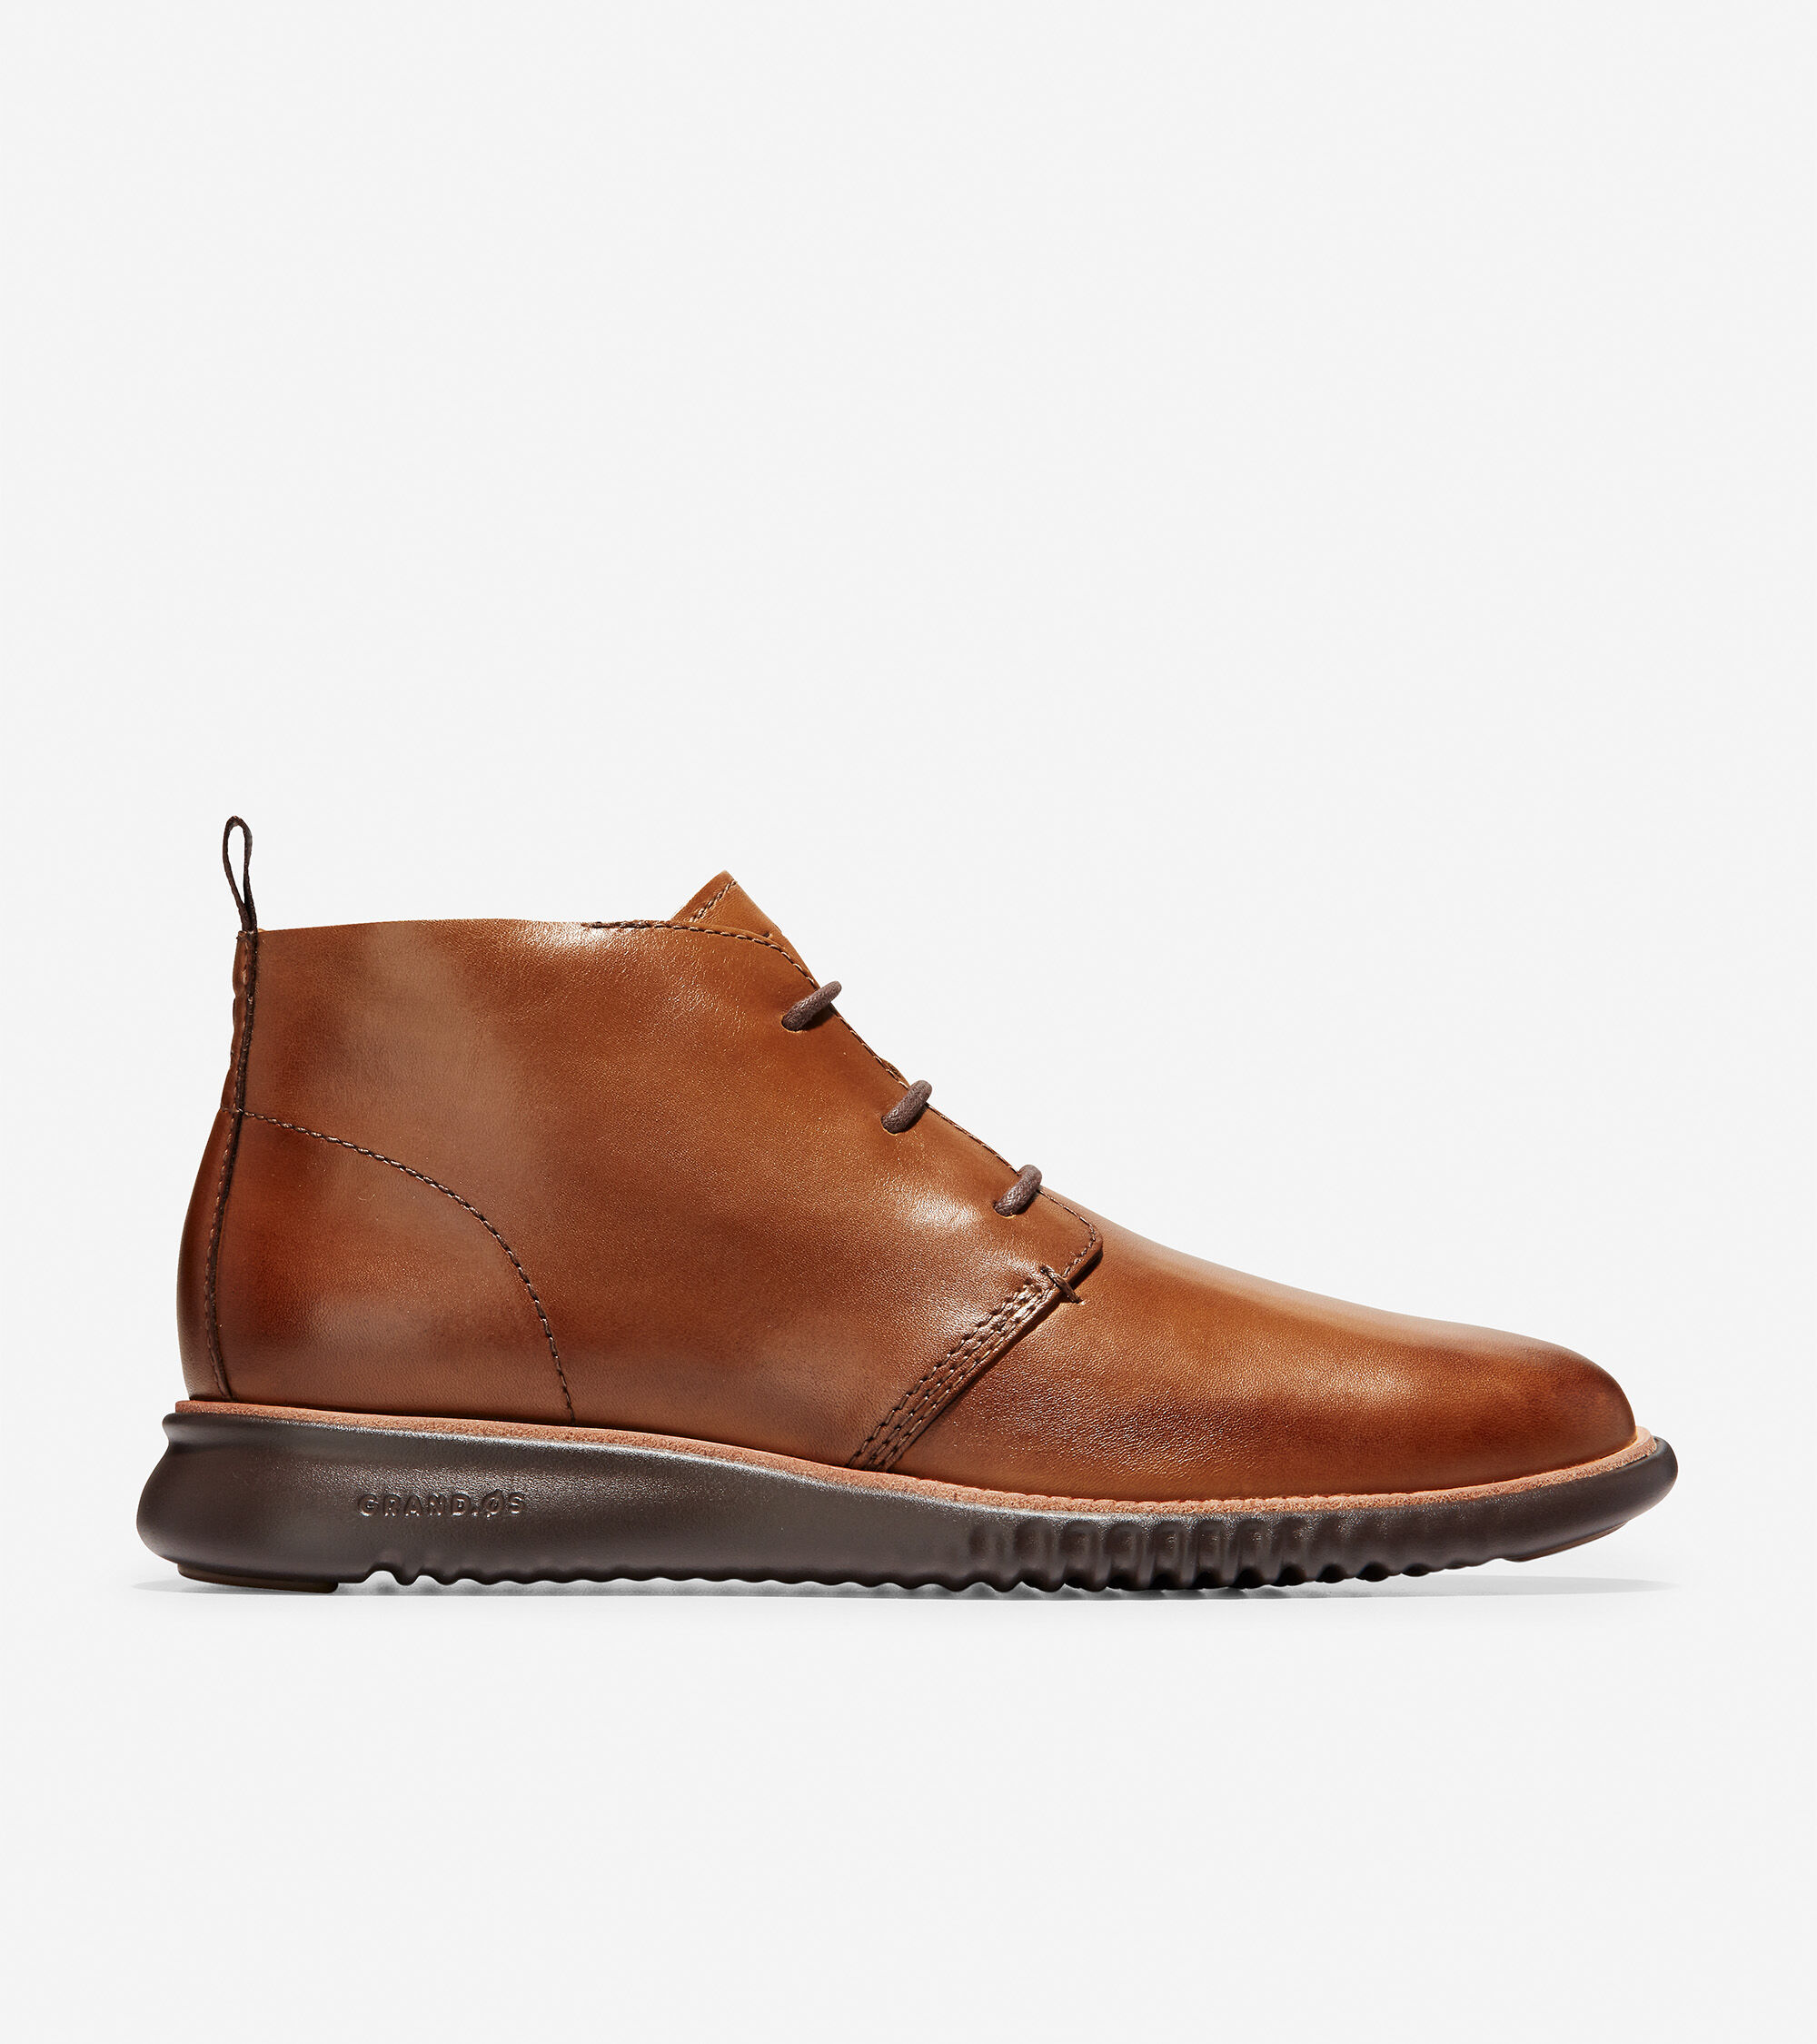 discounted cole haan shoes